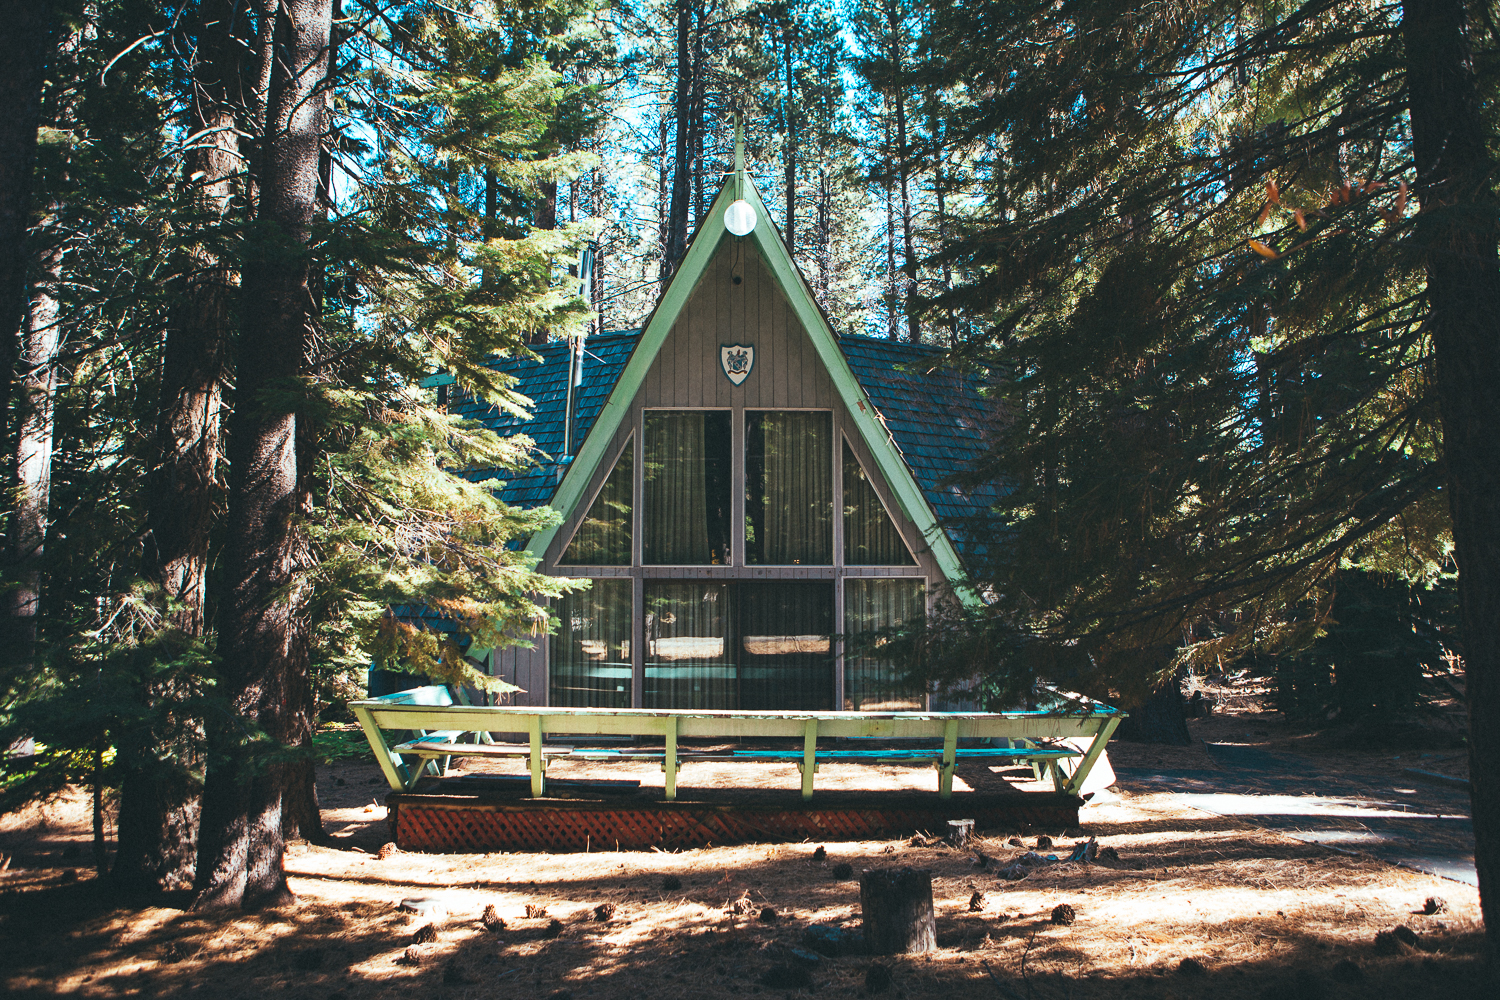 Look up #CabinPorn on Instagram. You too may get passionate about these homes.